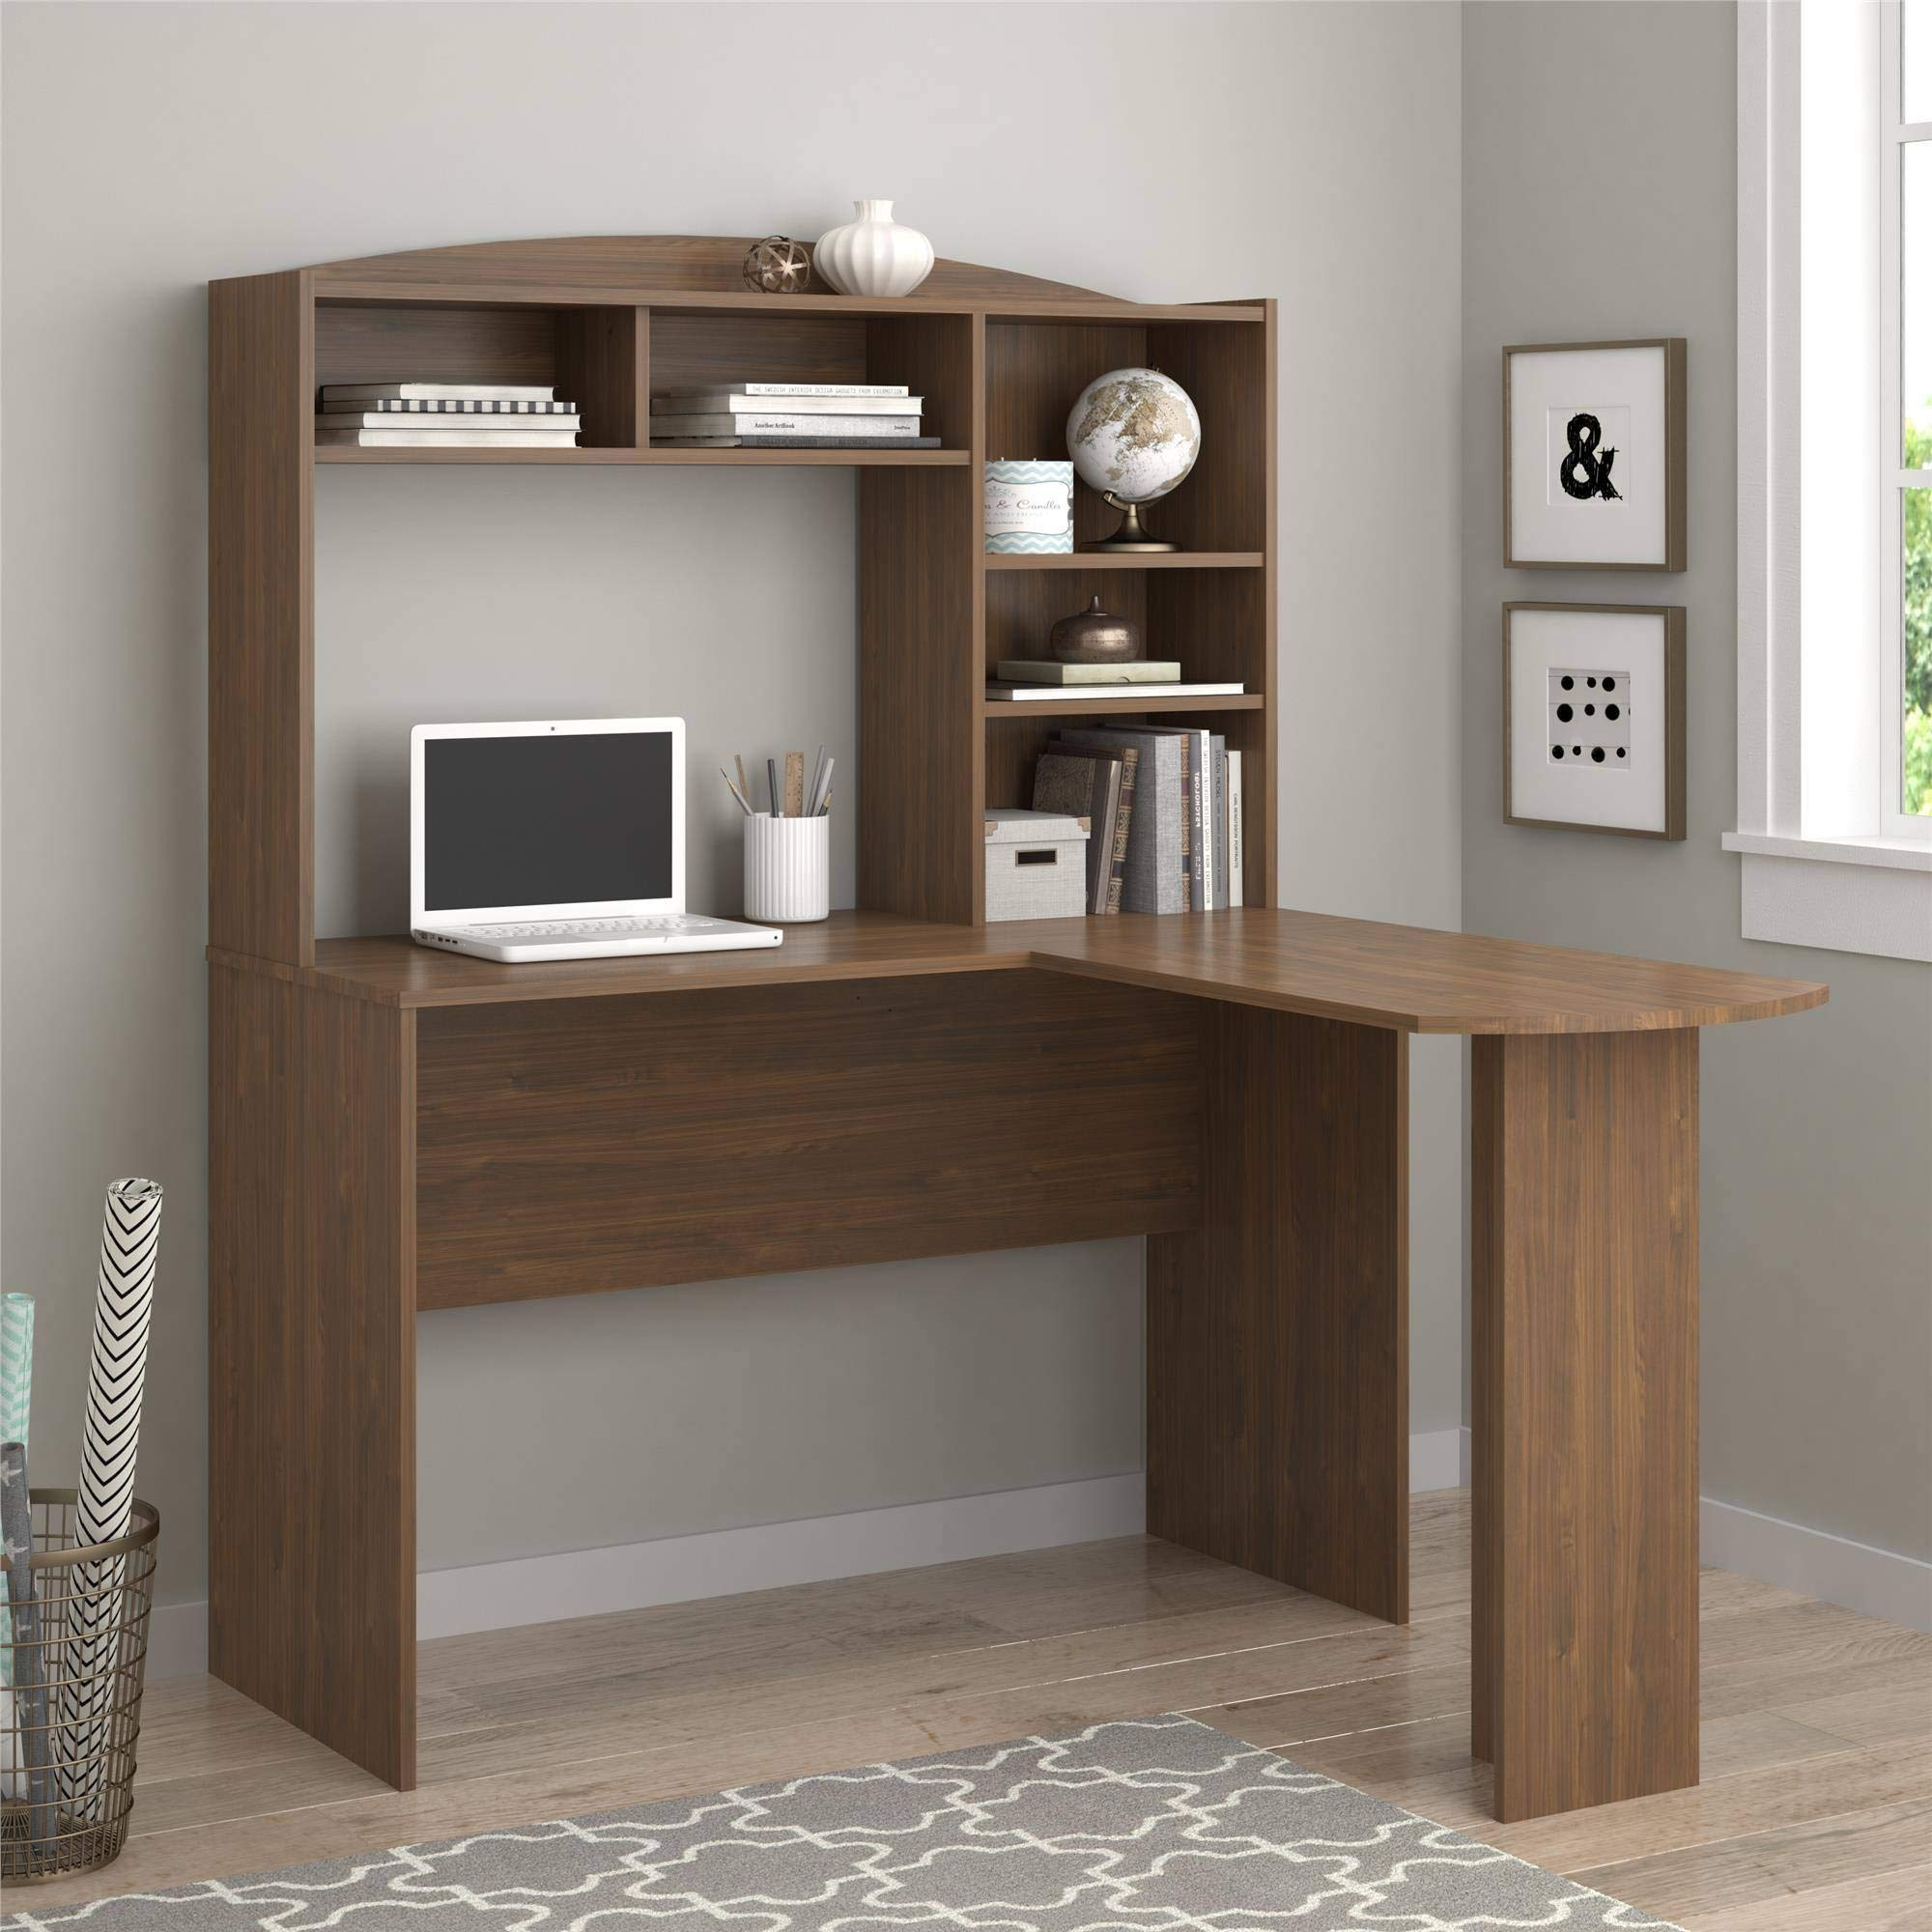 L Shaped Computer Desk - Walnut Wood with Hutch Five Shelves - Perfect Complement to Your Computer and Your Space